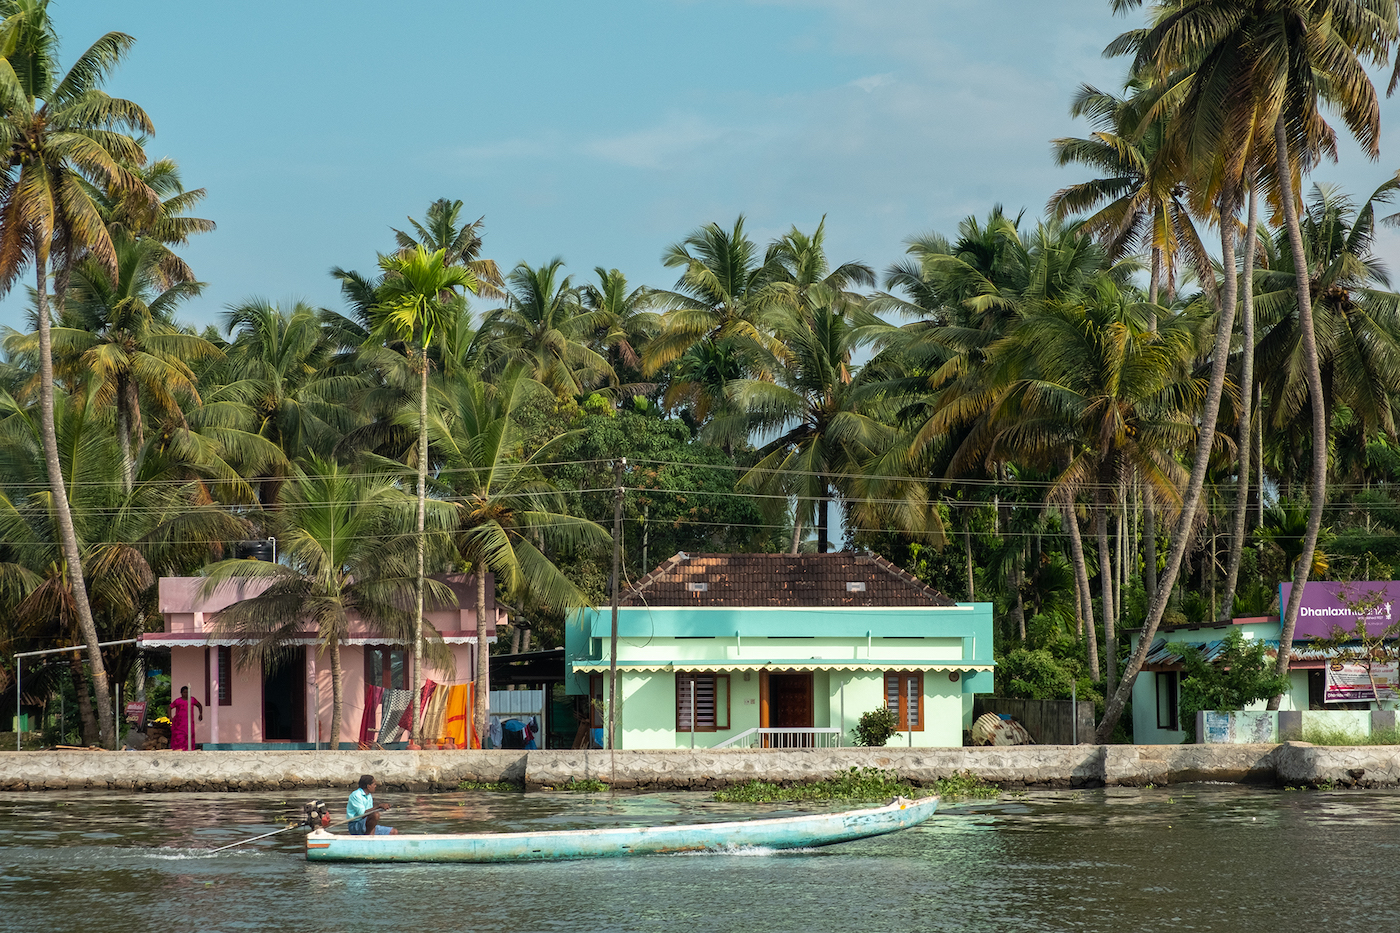 alleppey rondreis zuid india